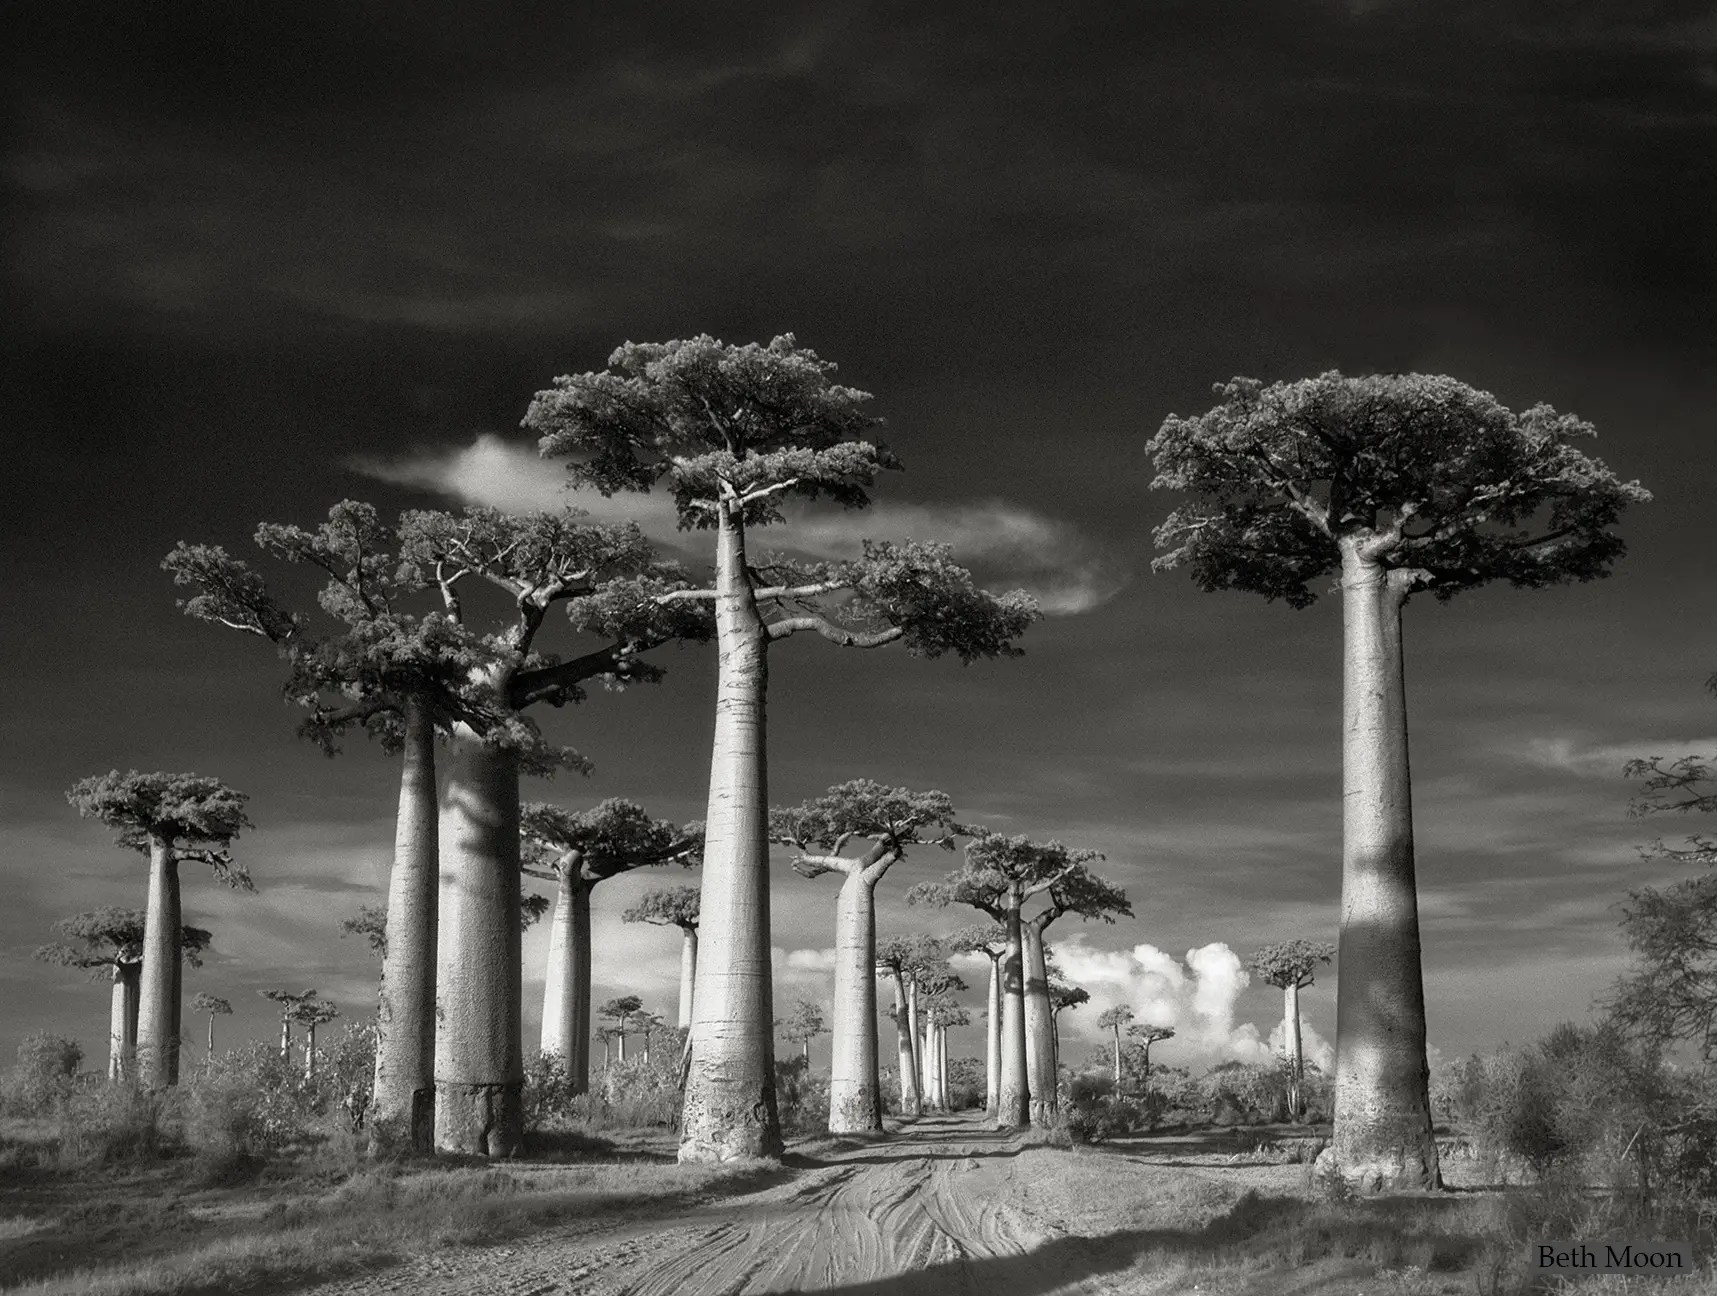 One of the most popular tourist attractions in Madagascar, the Avenue of the Baobabs, is a dirt road flanked by about 25 Baobab trees, which are only found on the island and which grow to be almost 100 feet tall. The trees along the avenue are thought to be as old as 800 years.